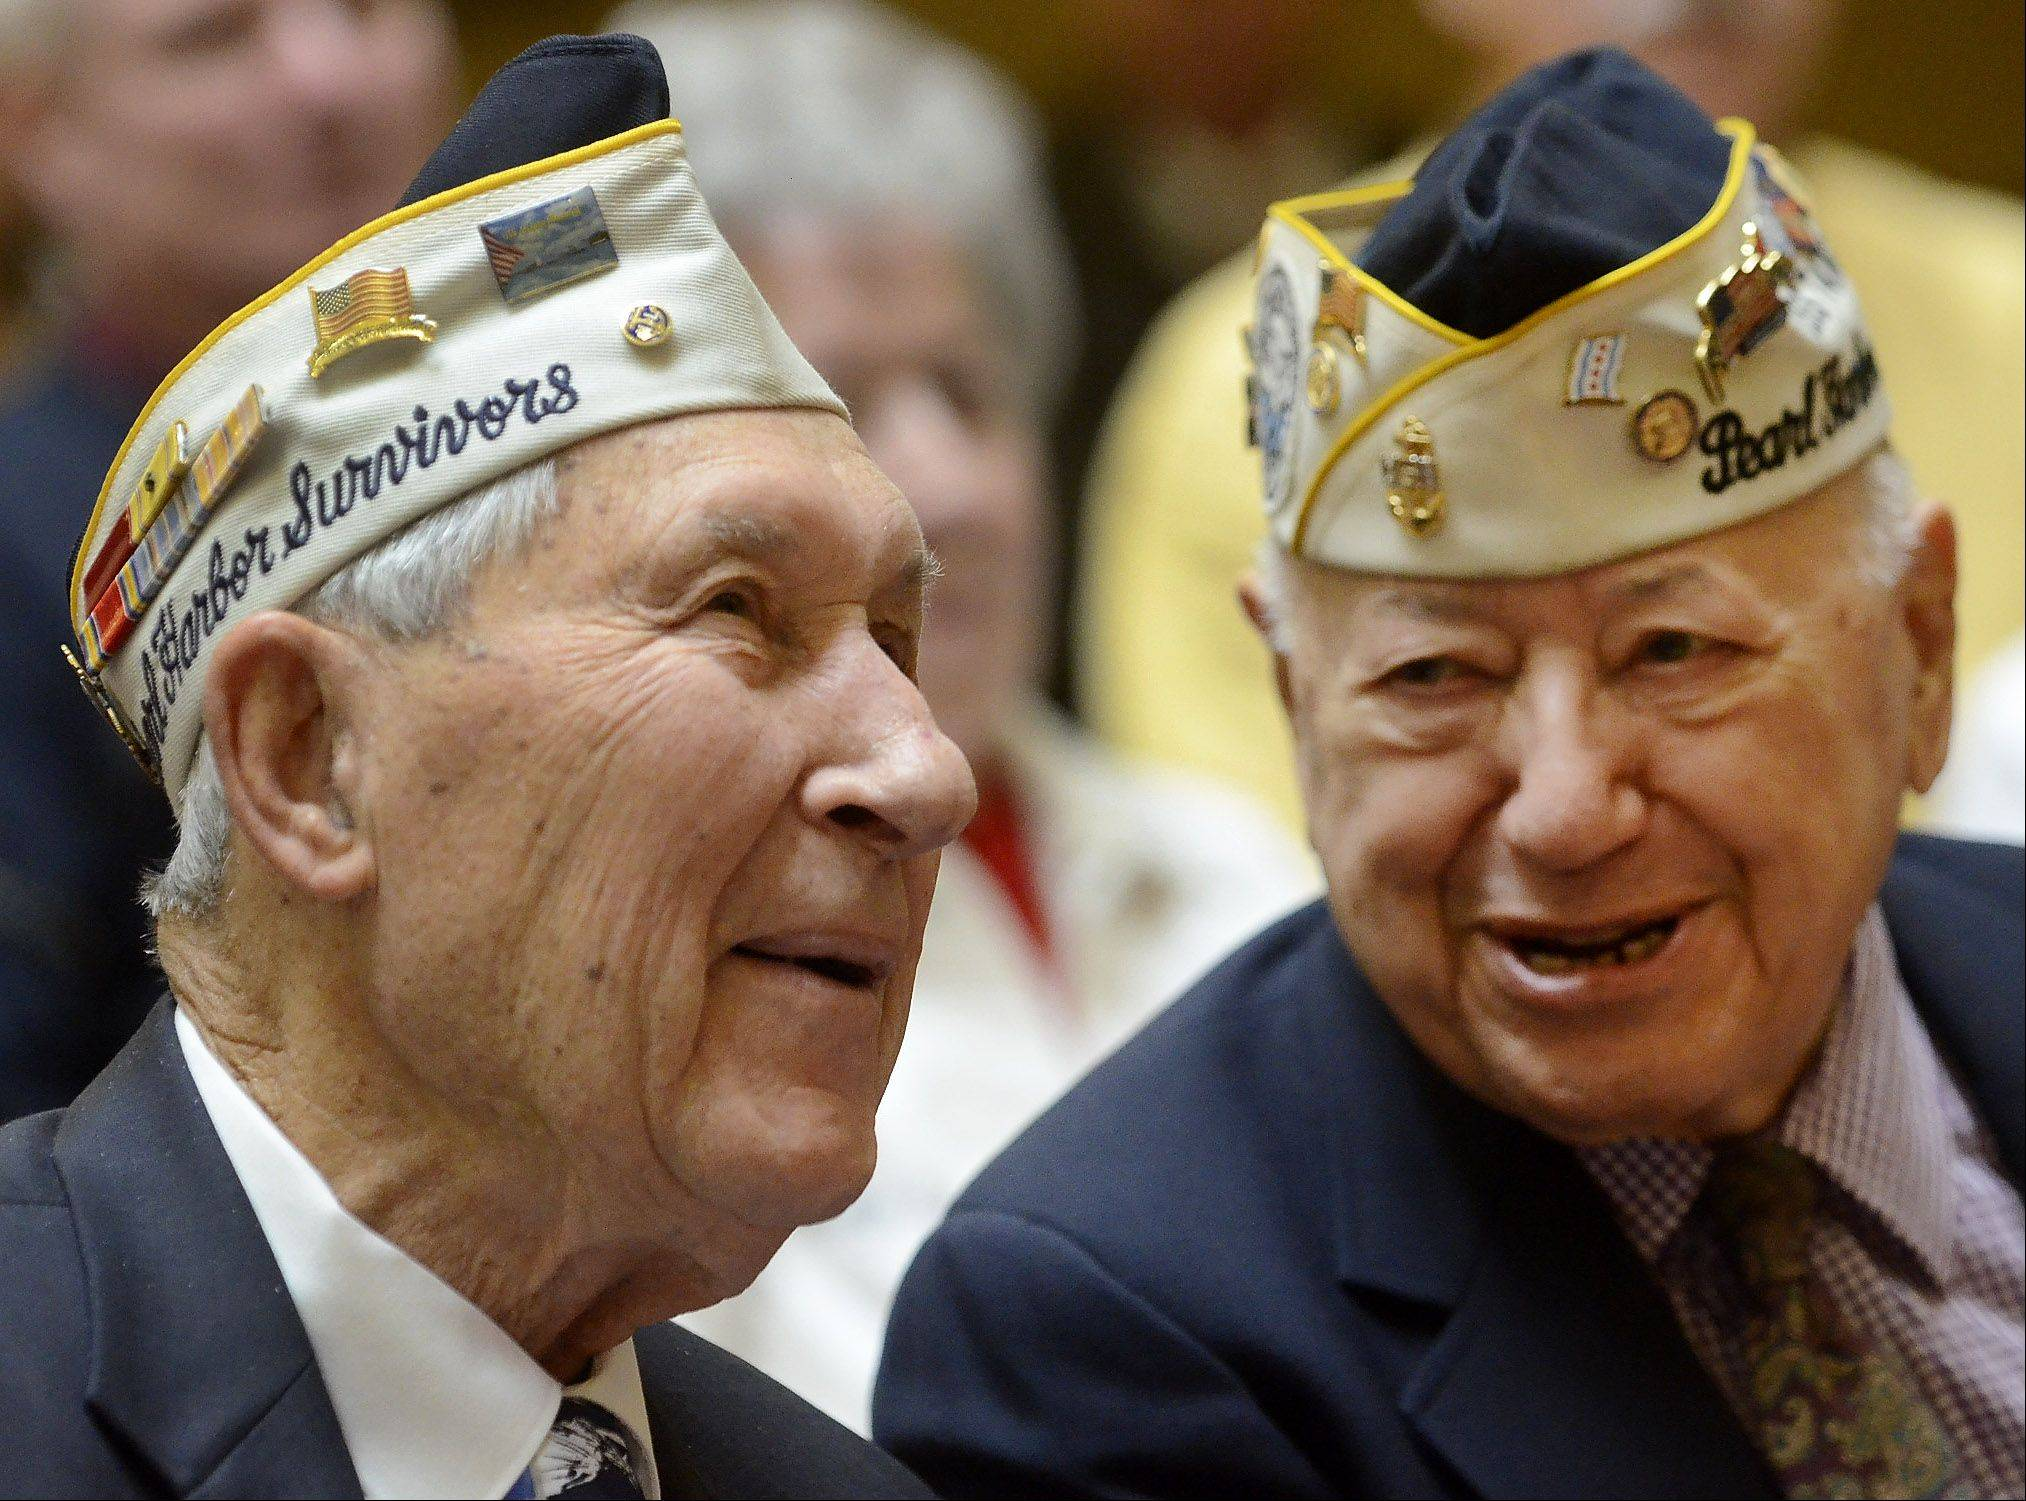 Lyle Hancock of Wheeling and Joe Triolo of Waukegan were among the survivors honored Friday in Des Plaines during a ceremony commemorating the 72nd anniversary of the attack on Pearl Harbor.